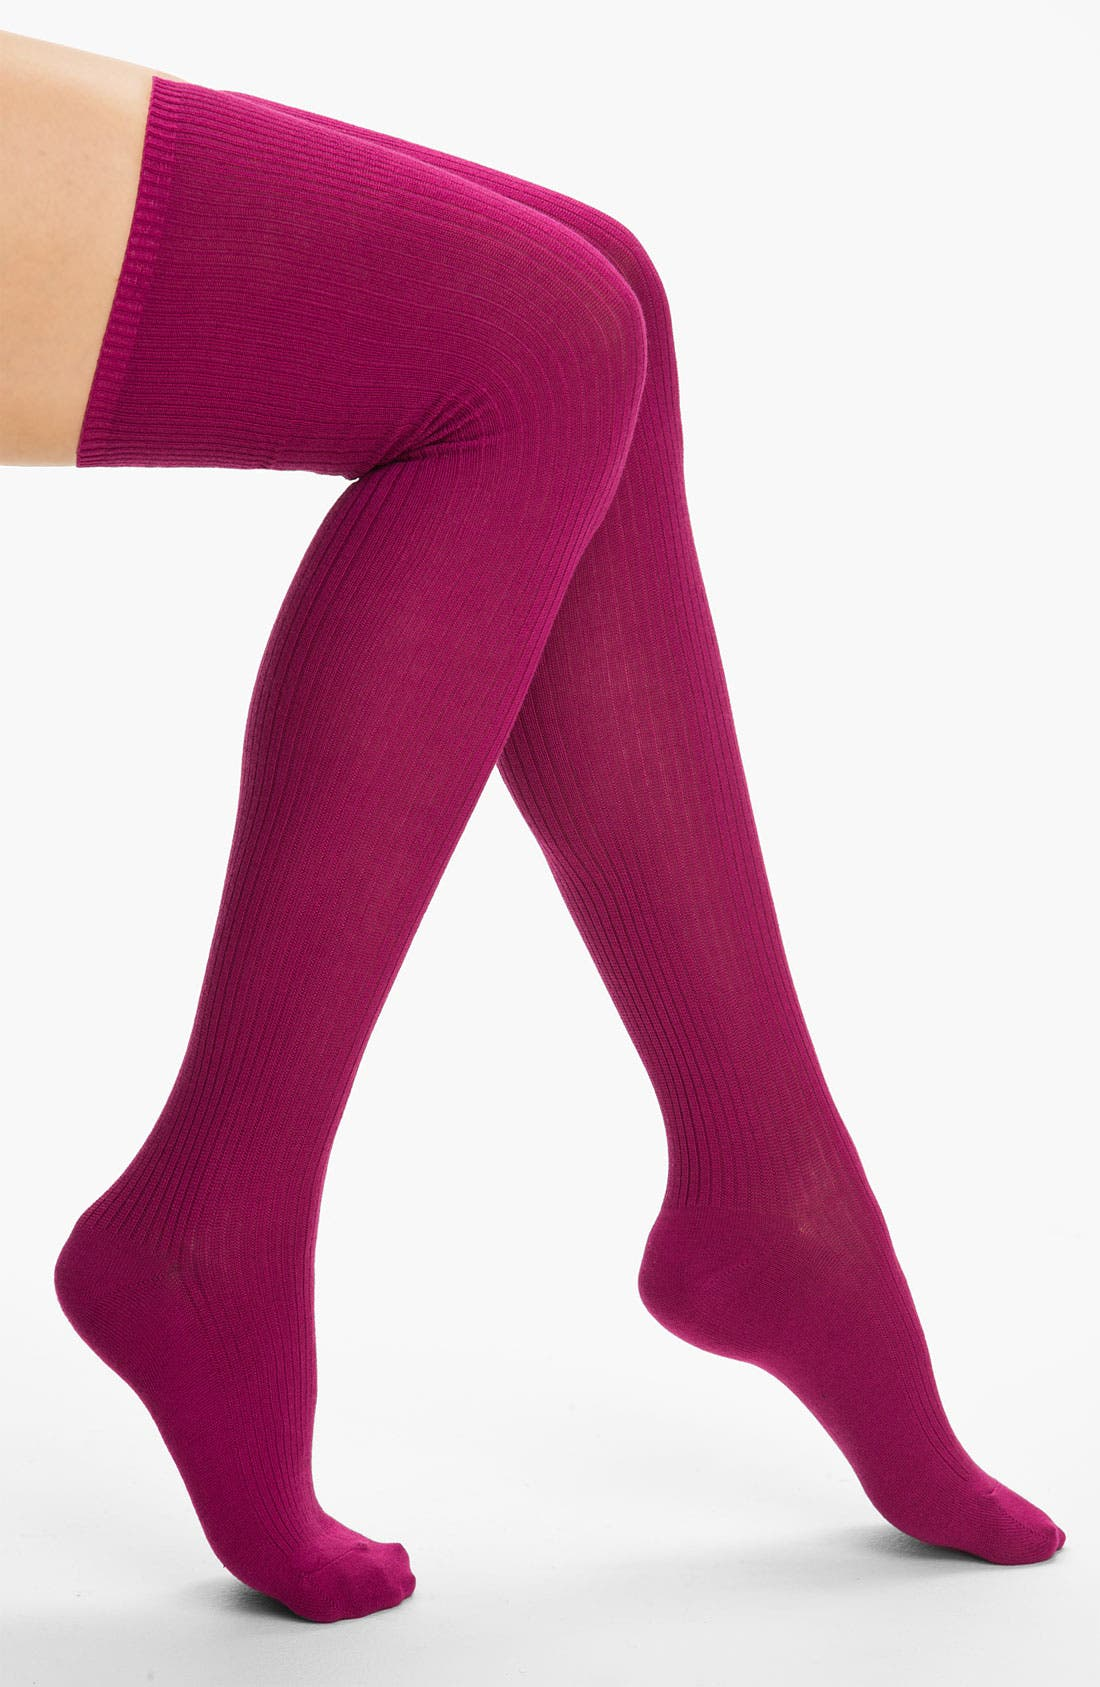 Alternate Image 1 Selected - Hue Ribbed Over the Knee Socks